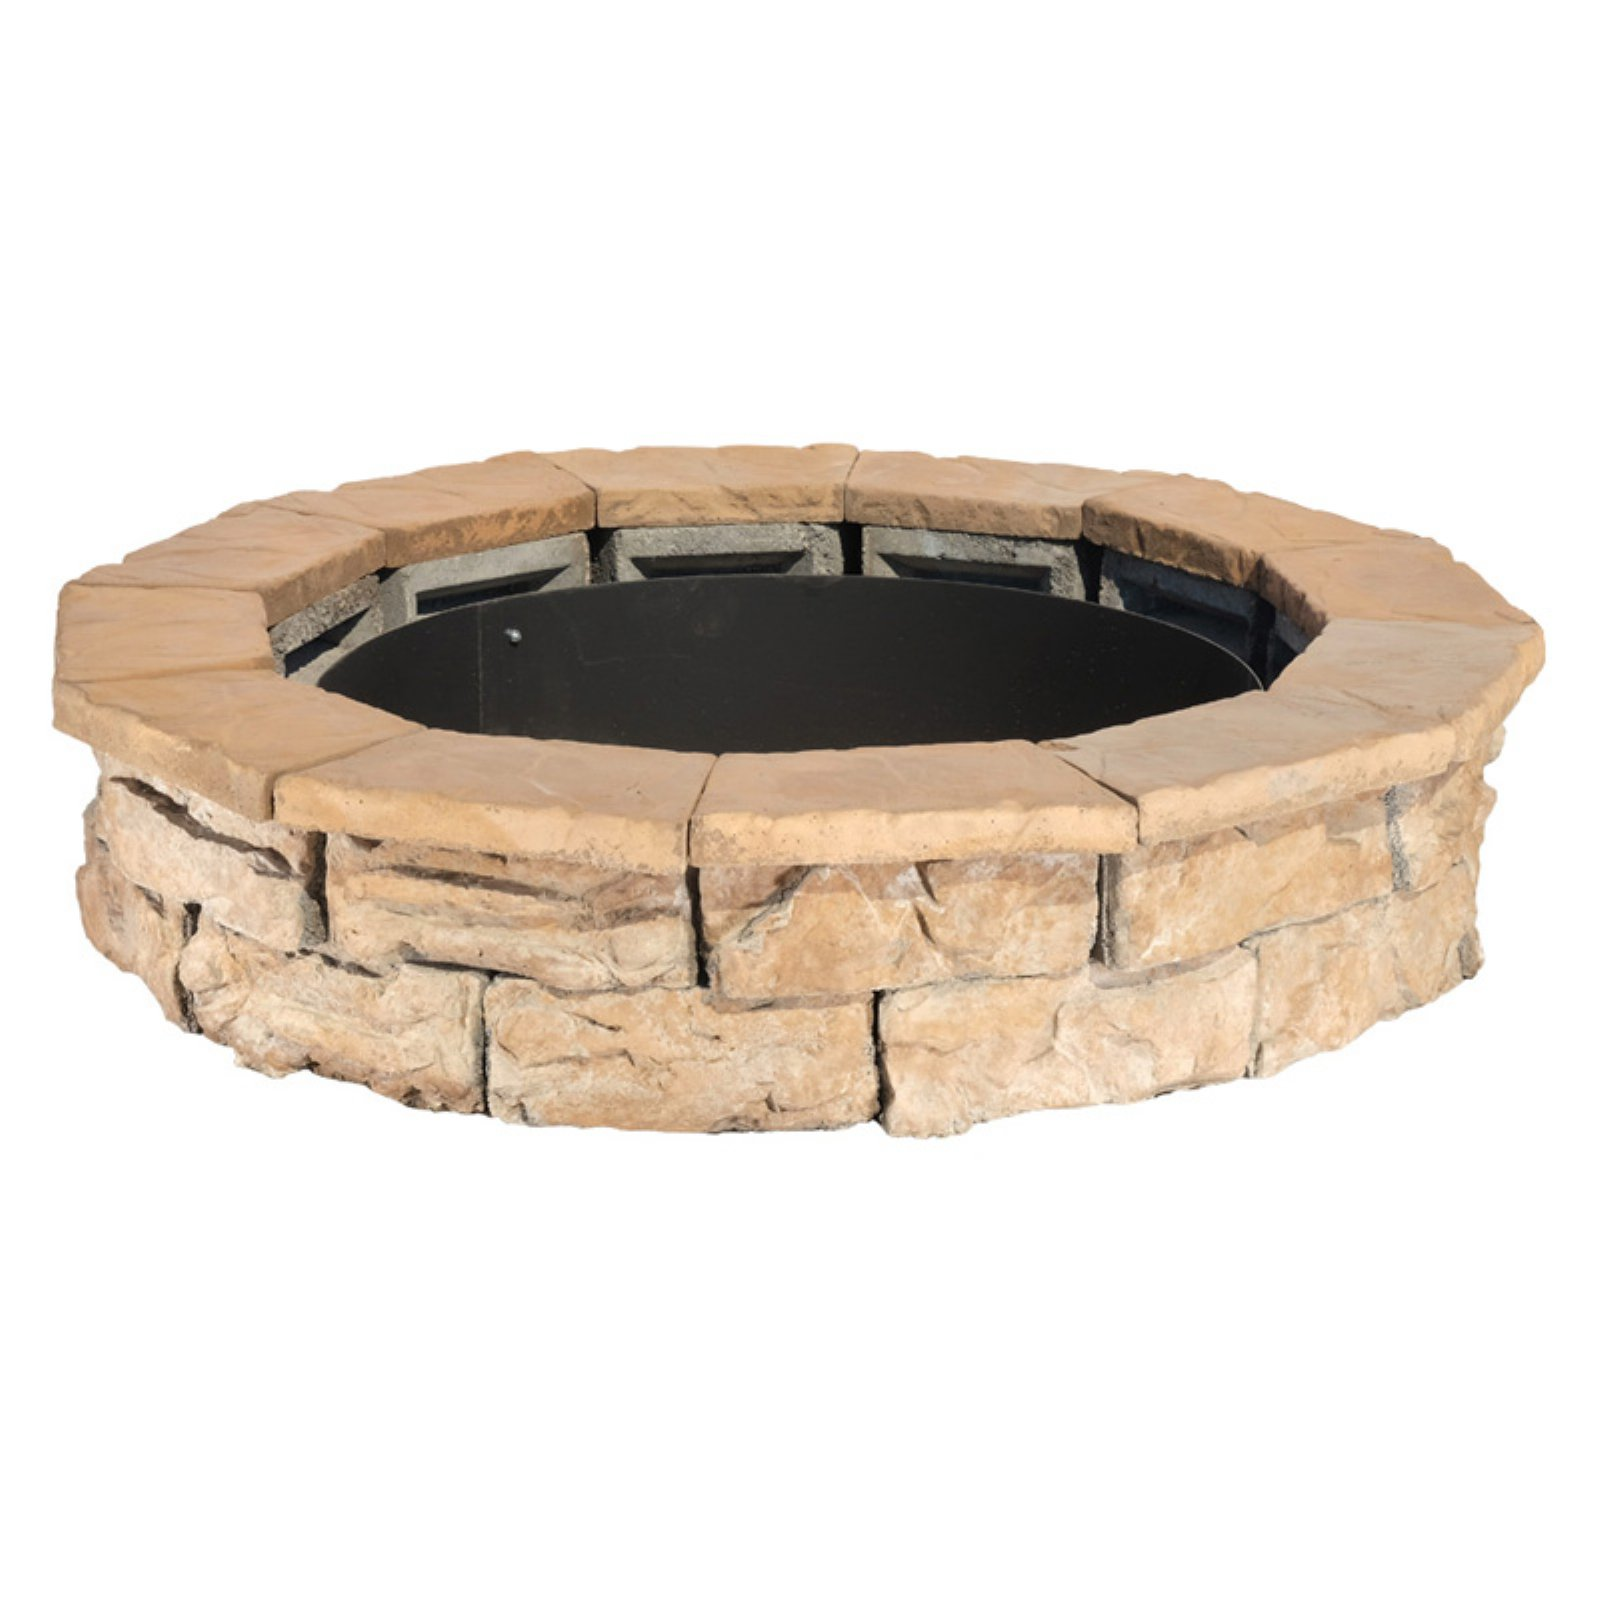 Natural Concrete Products Pantheon Round DIY Fire Pit Kit